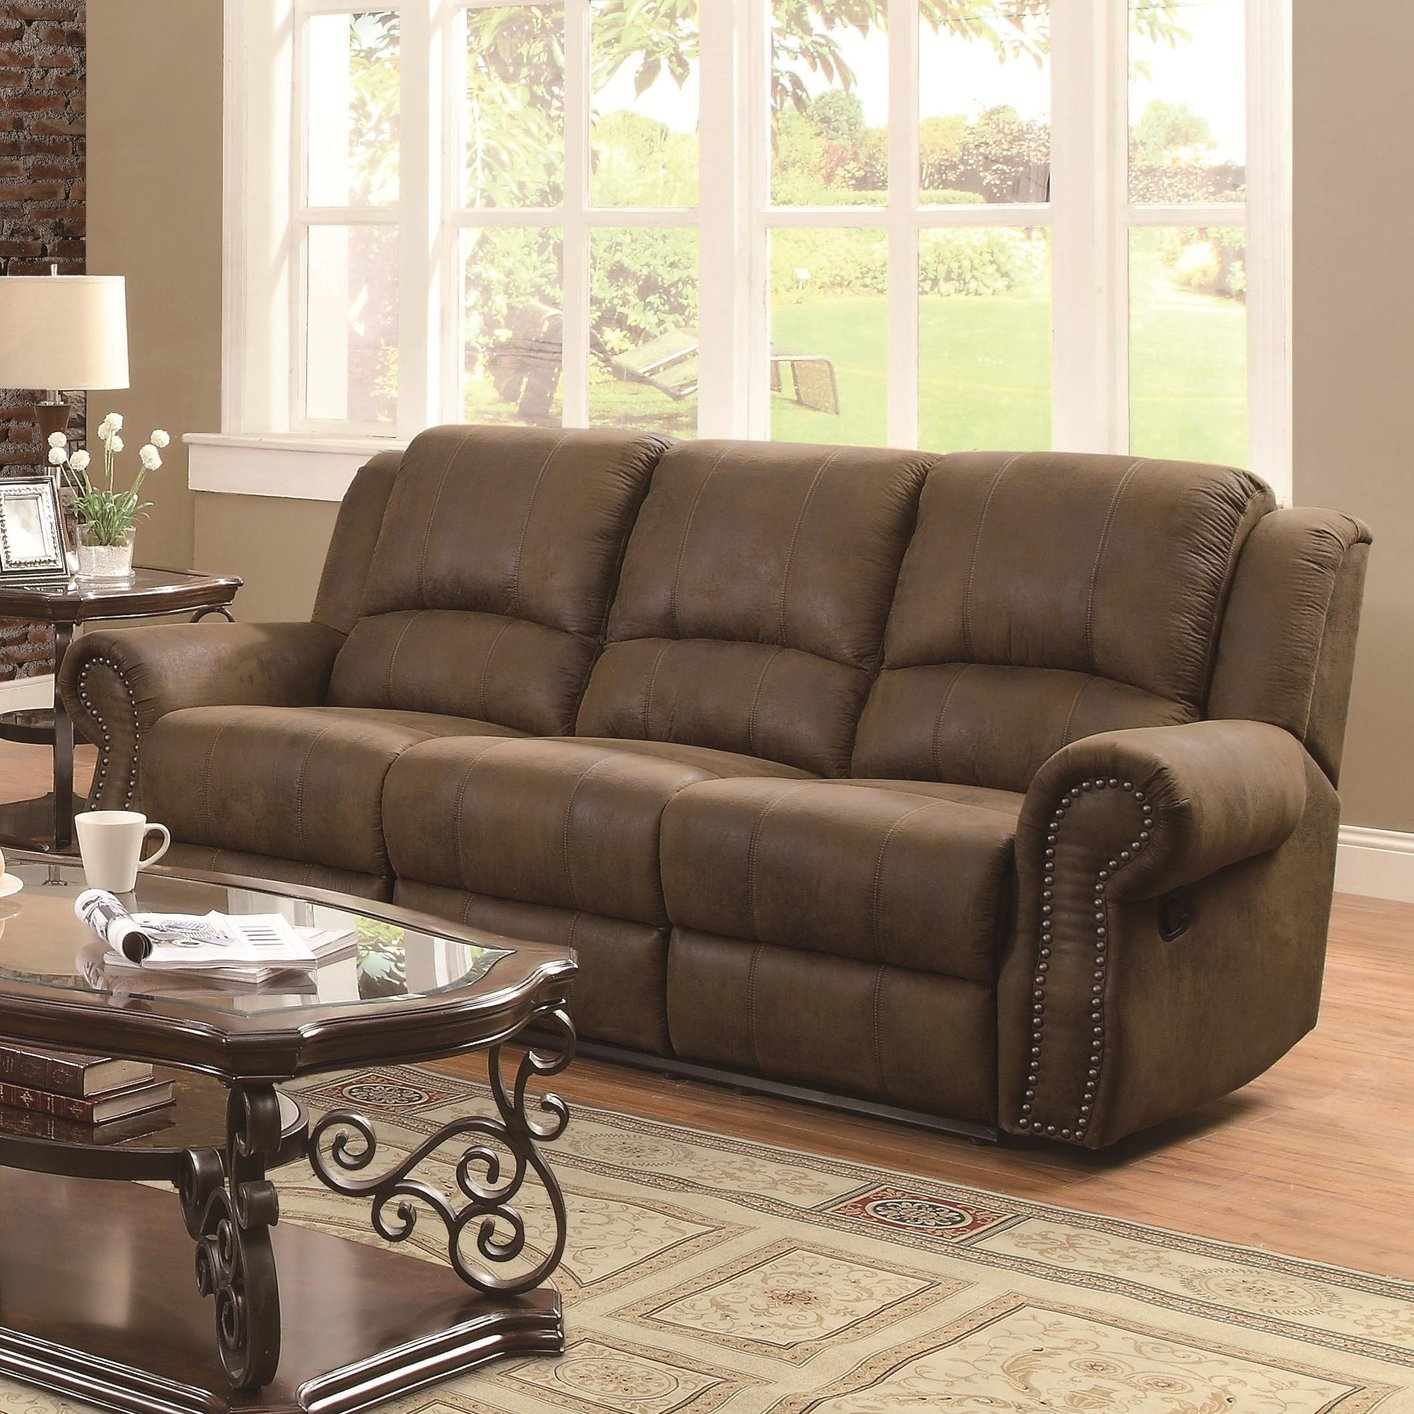 Coaster 650151 brown fabric reclining sofa steal a sofa for Brown fabric couch